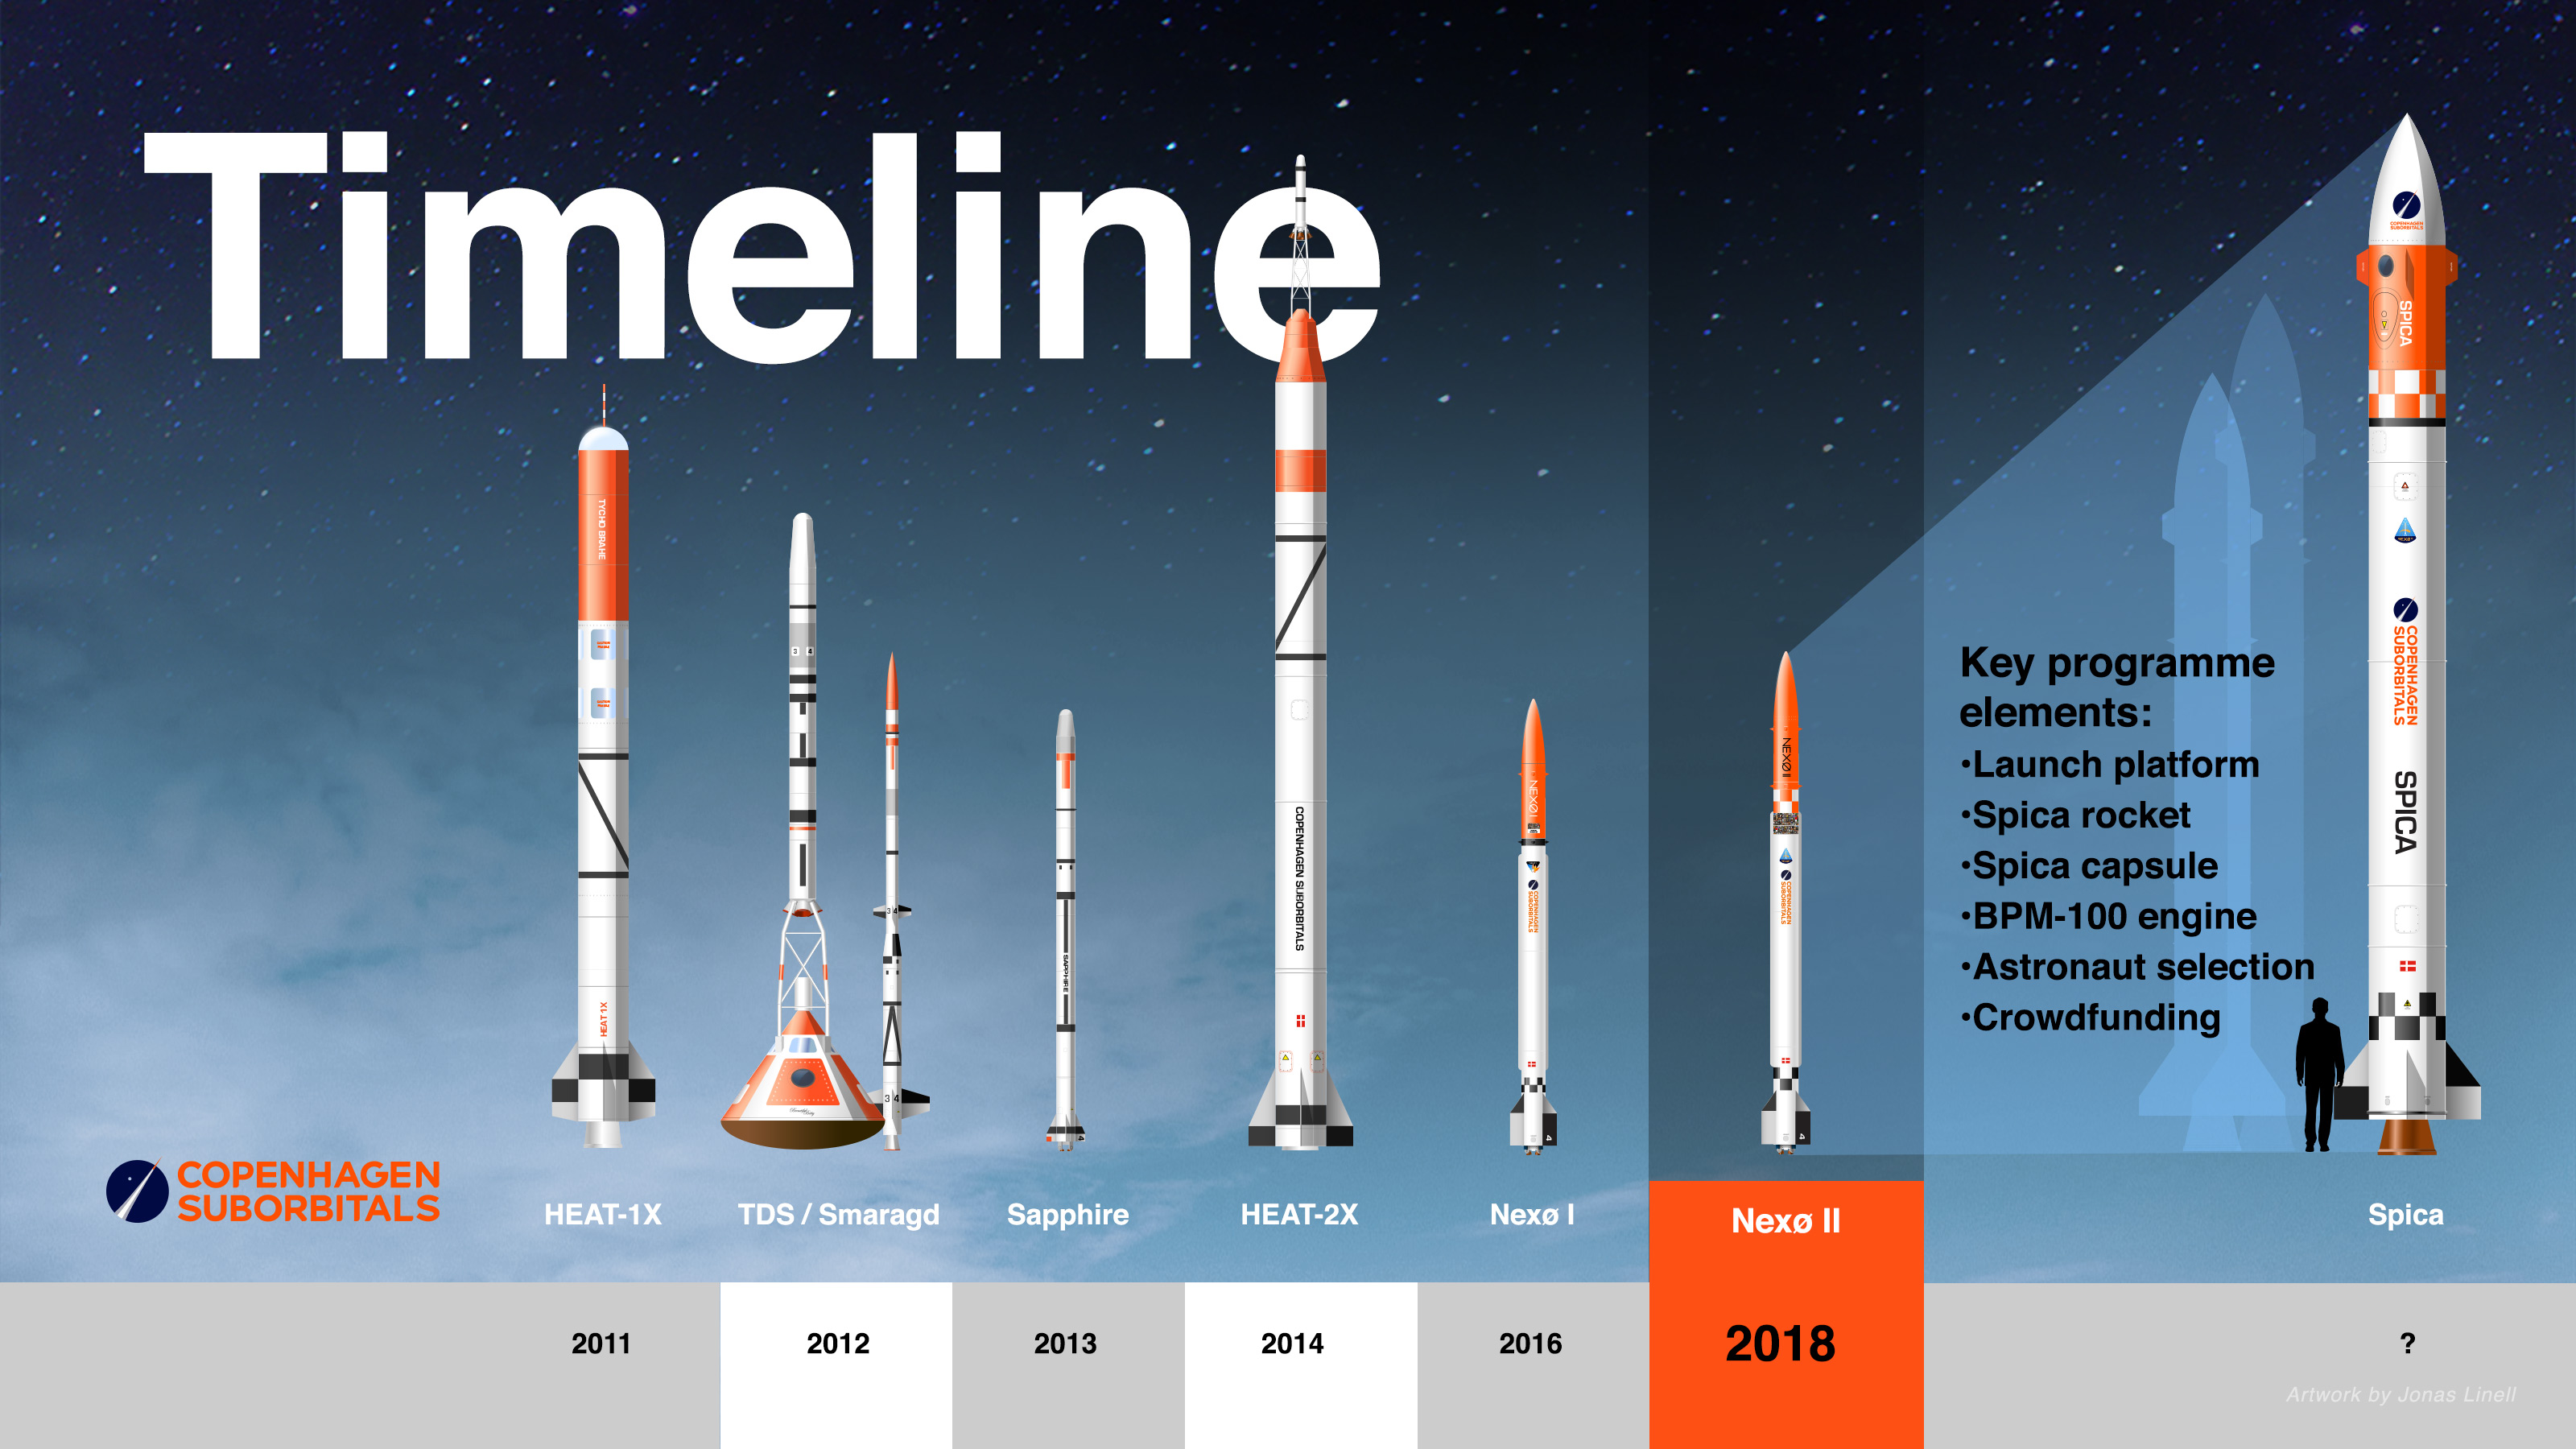 Danish organization launched an amateur rocket in the Baltic Sea 85